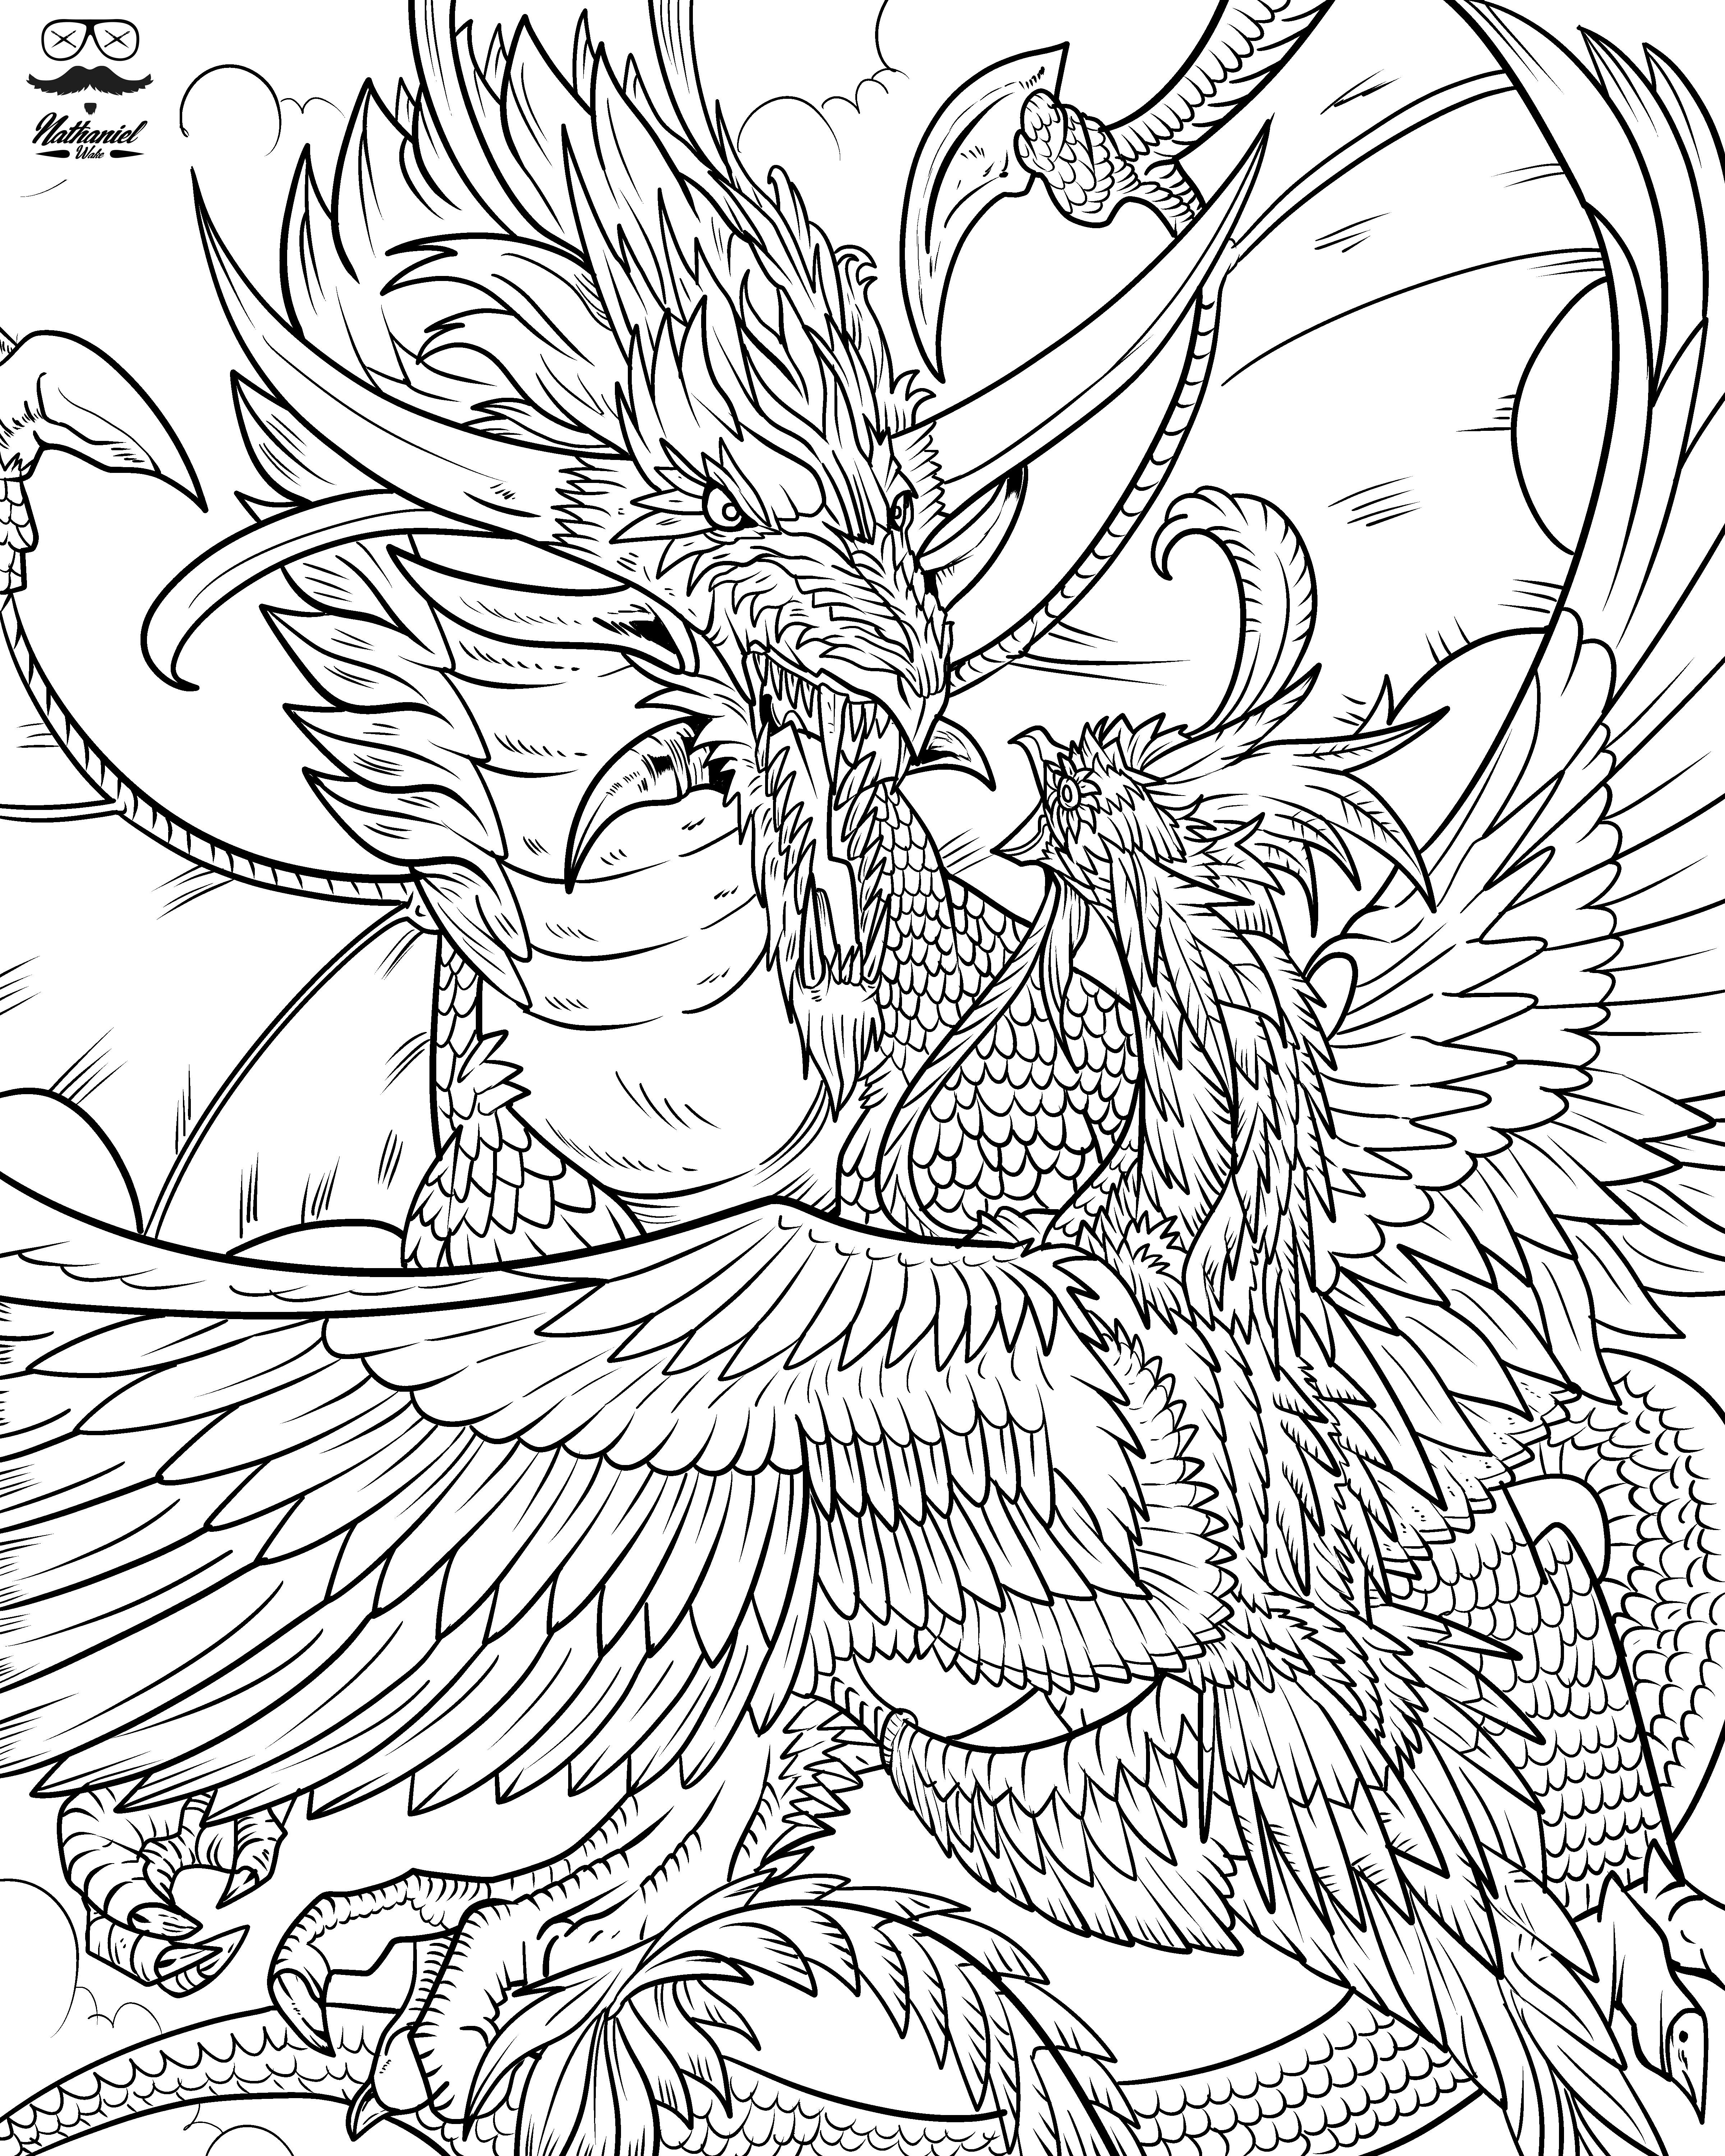 book of dragons coloring pages - photo#23